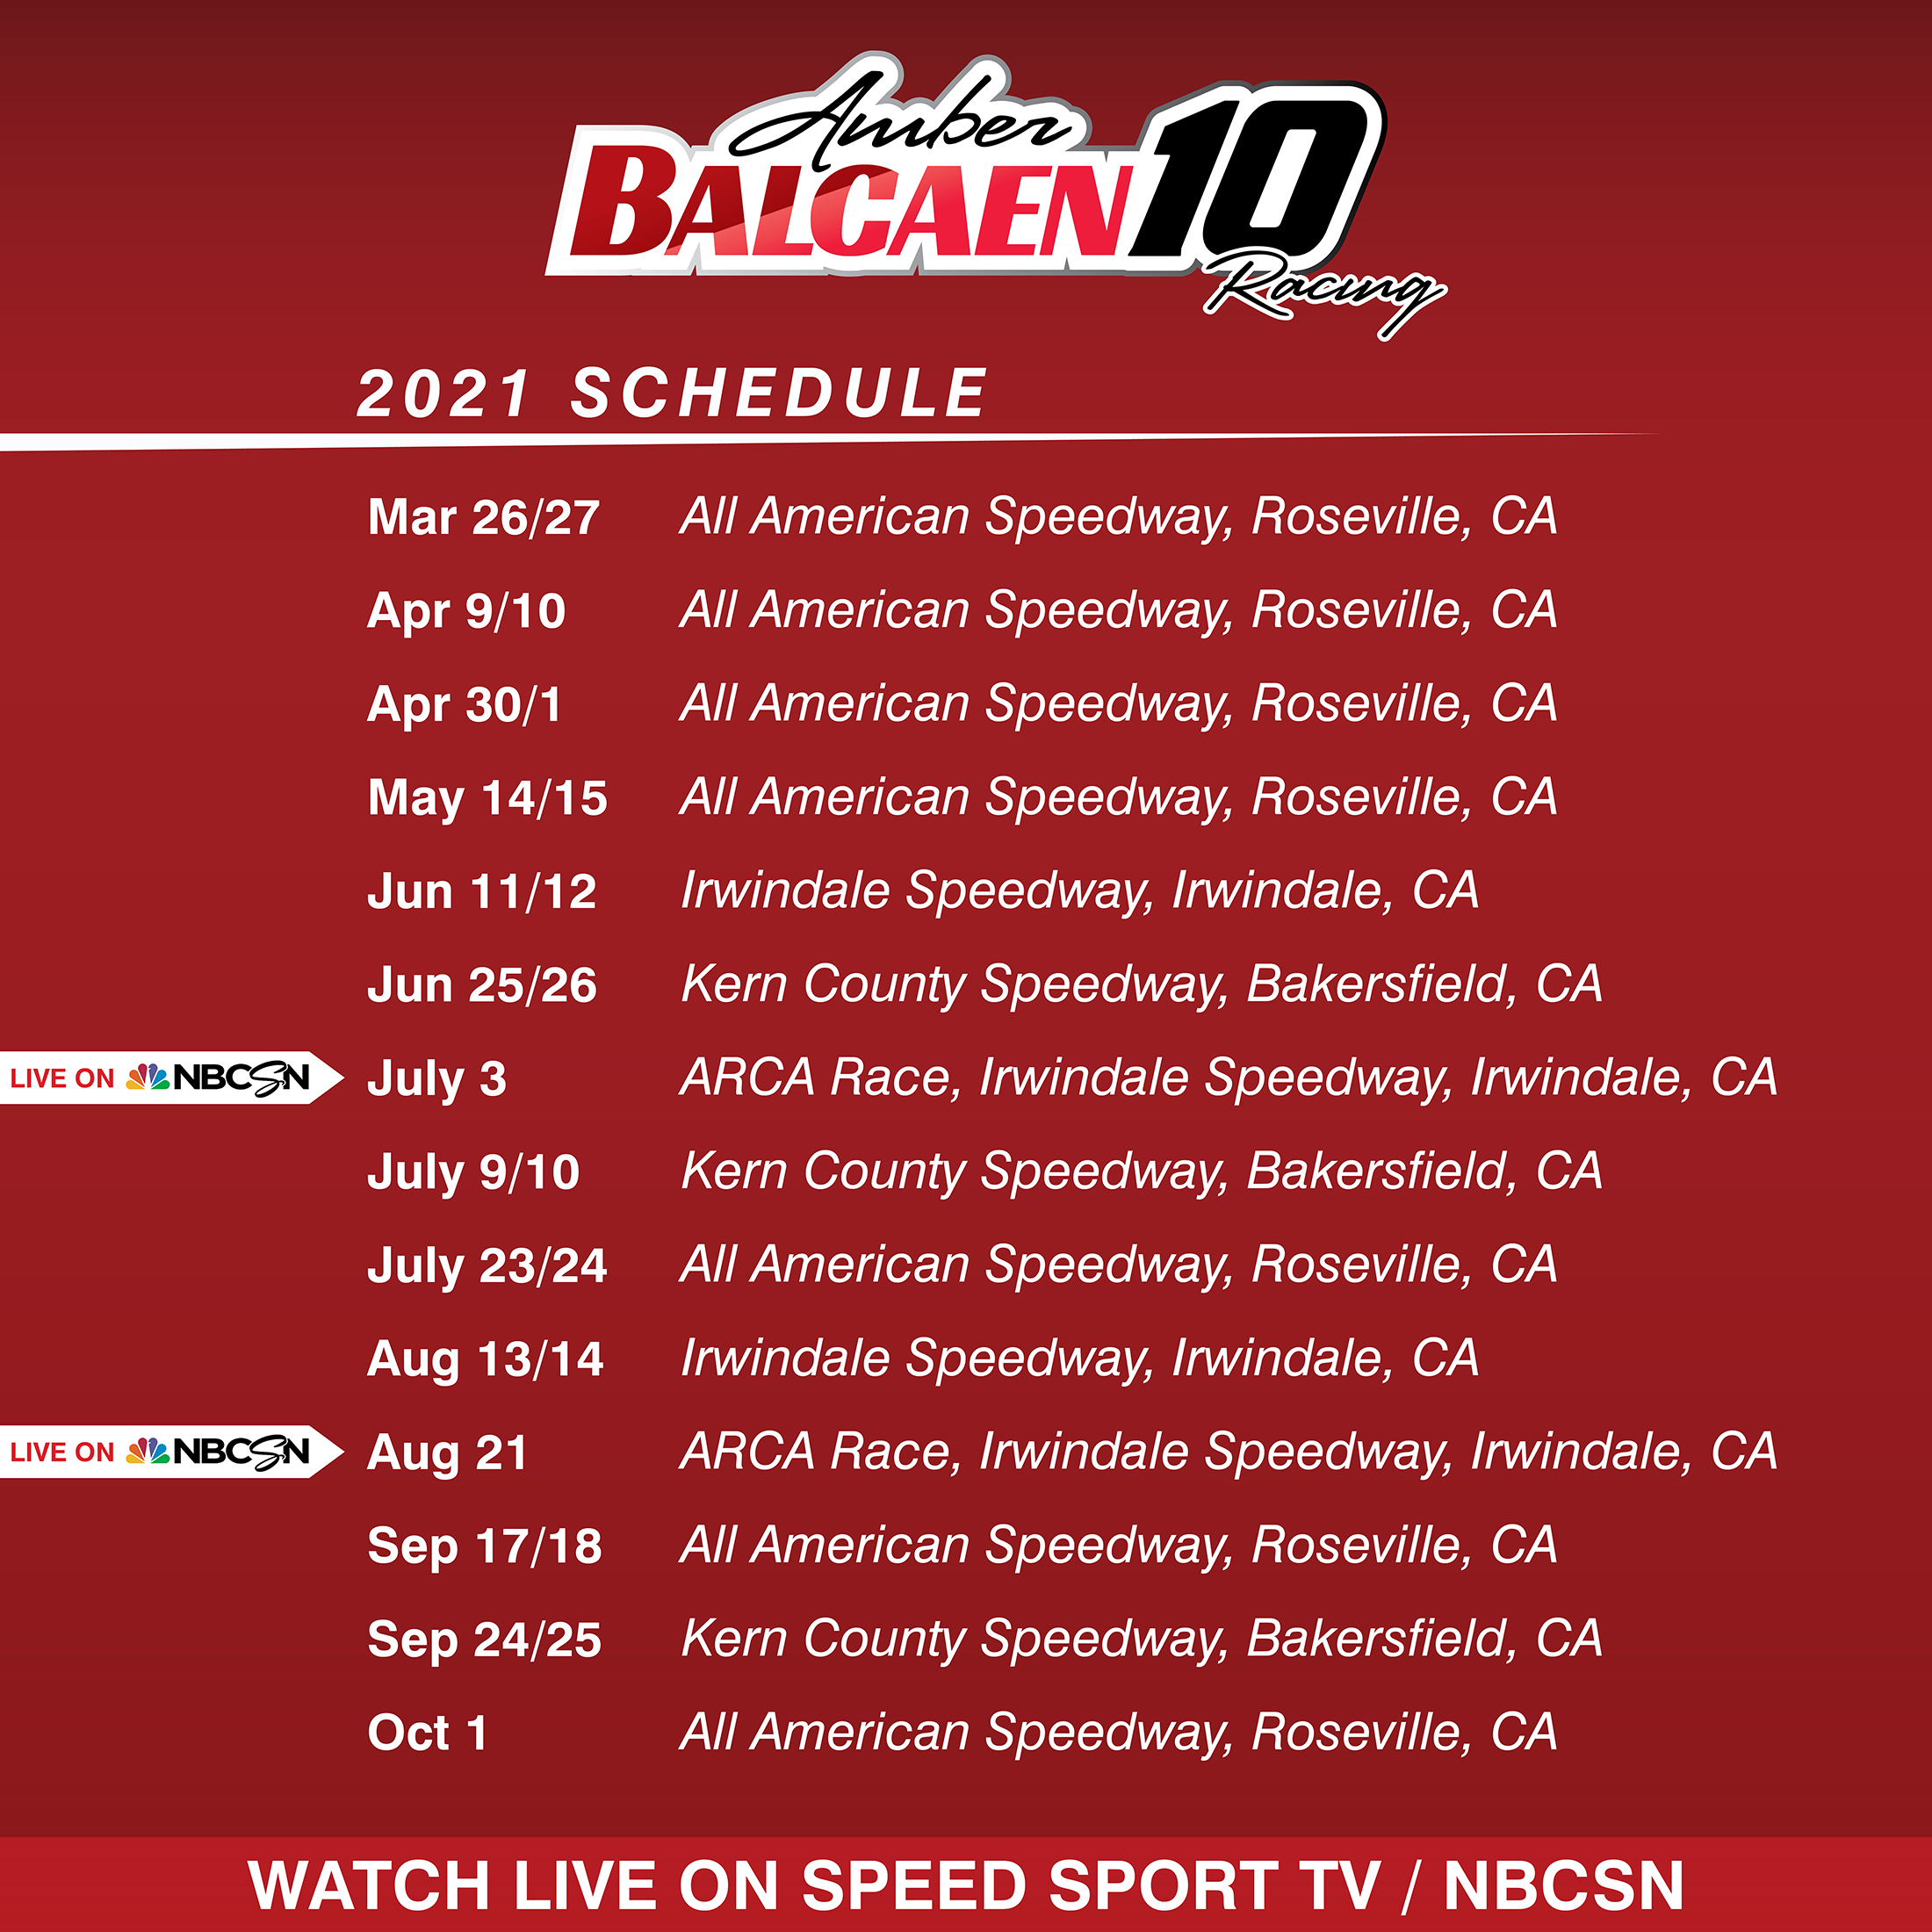 feed-amber-balcaen-nascar-racing-schedule-update-2021-04-14-v2-02.jpg